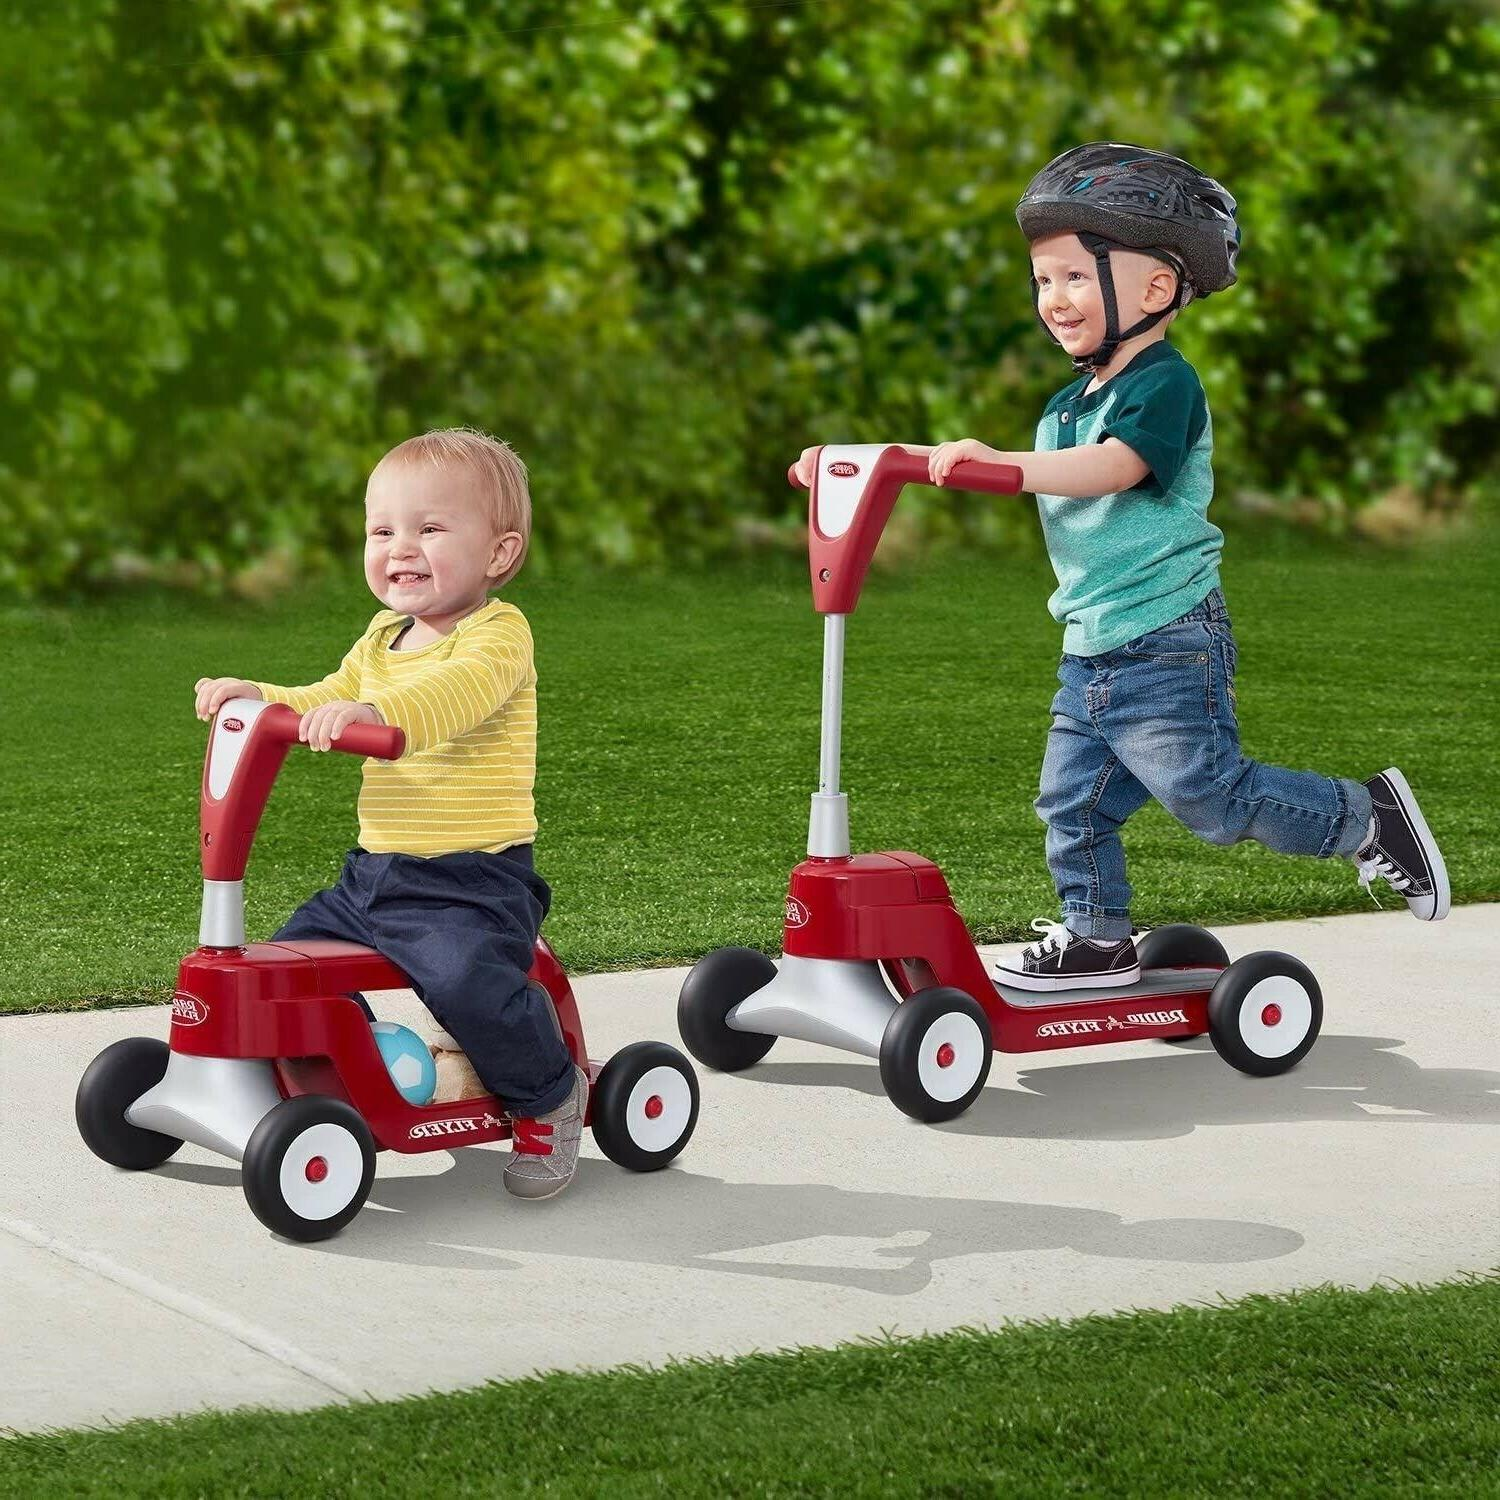 Radio Flyer Scooter, Ride on, Model: 615S